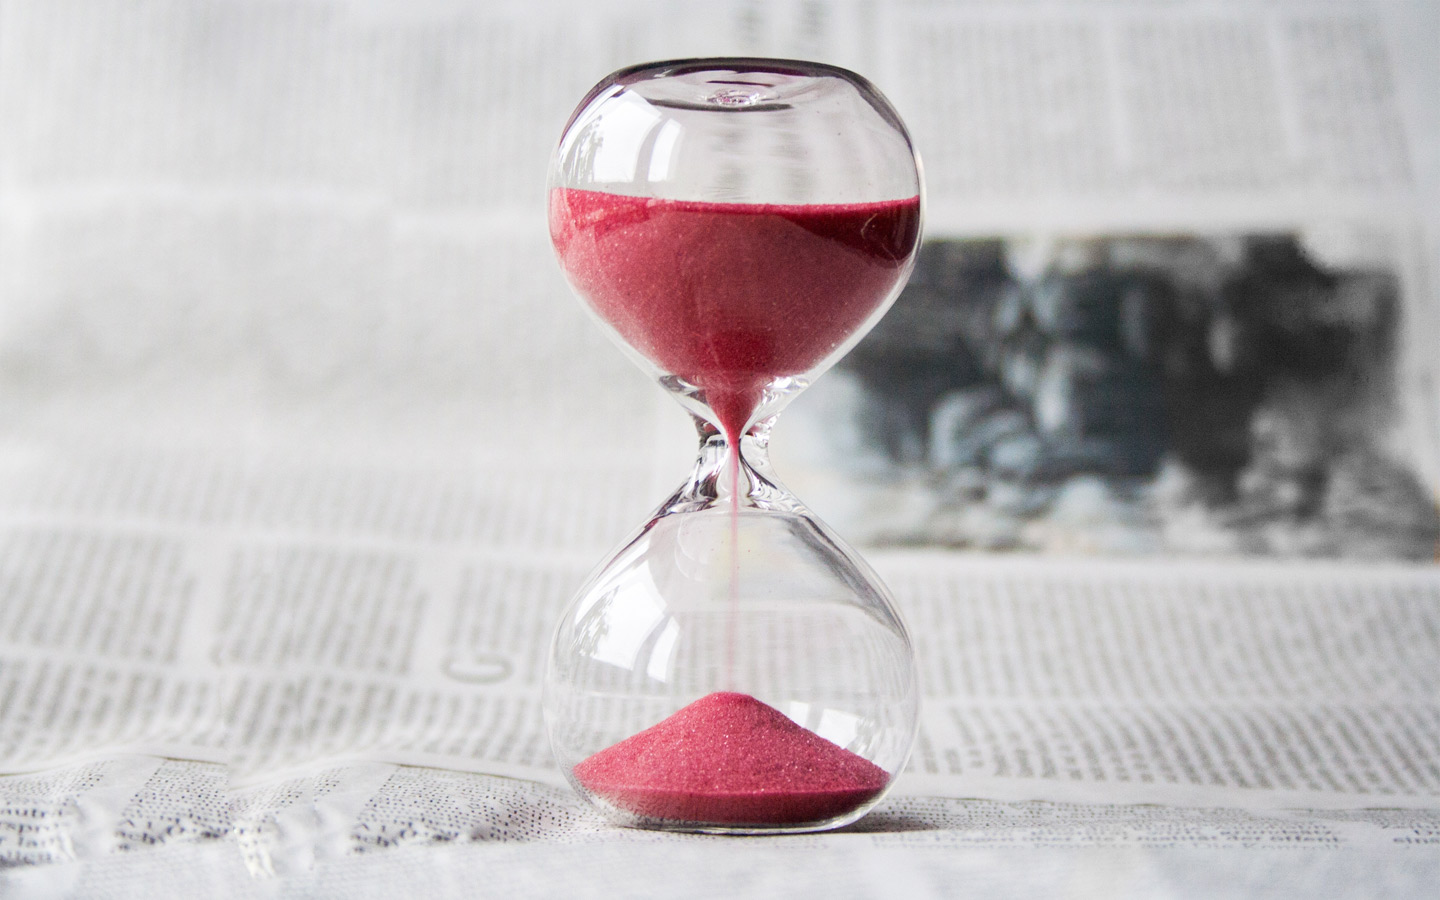 an hourglass placed on a newspaper